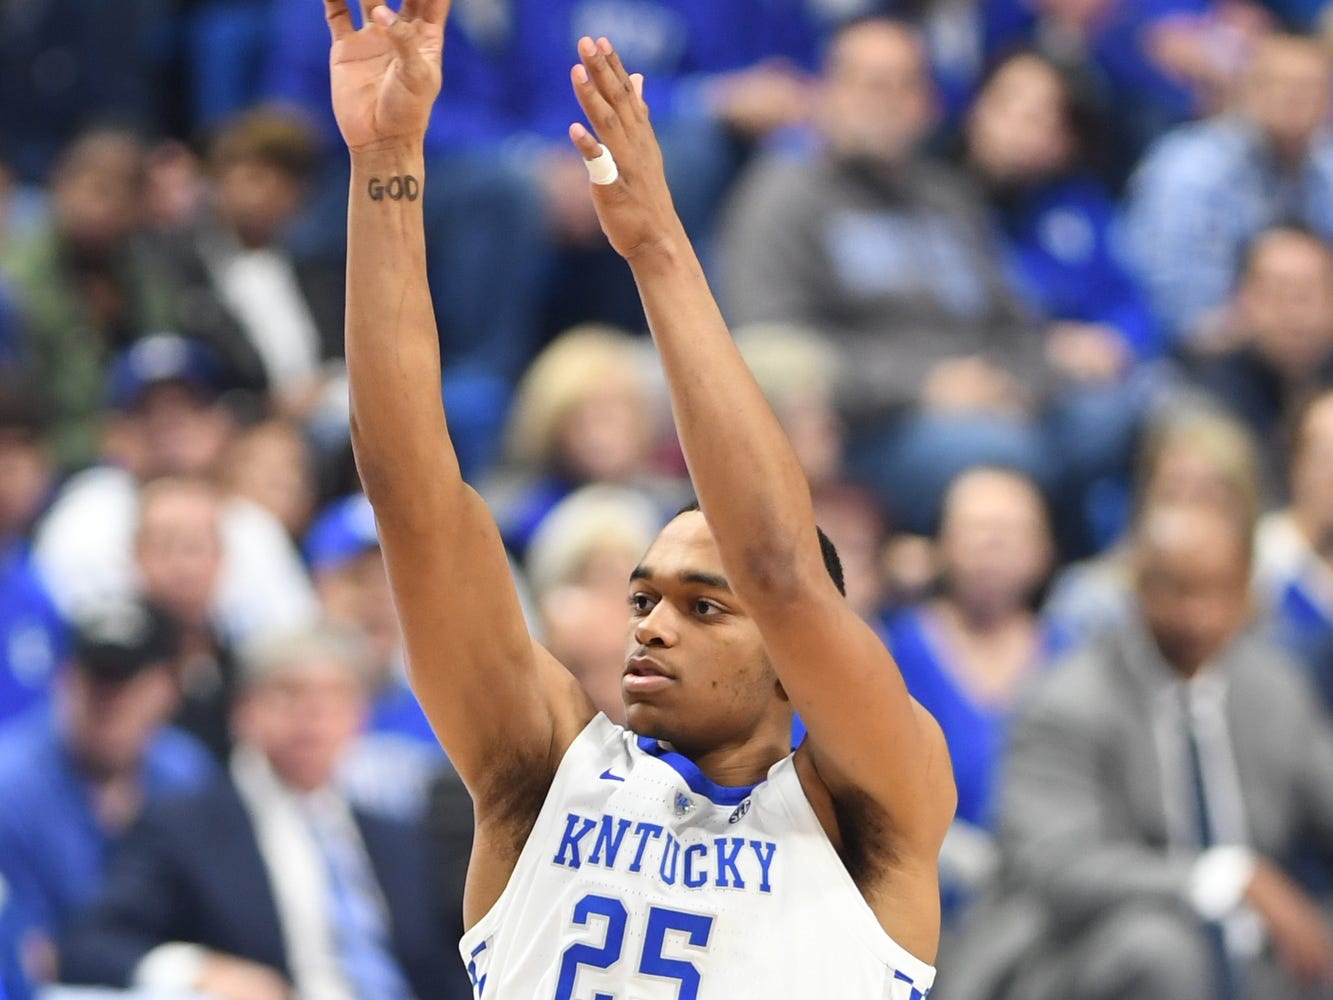 Kentucky forward PJ Washington shoots during the University of Kentucky men's basketball game against Utah at Rupp Arena in Lexington, Kentucky, on Saturday, Dec. 15, 2018.